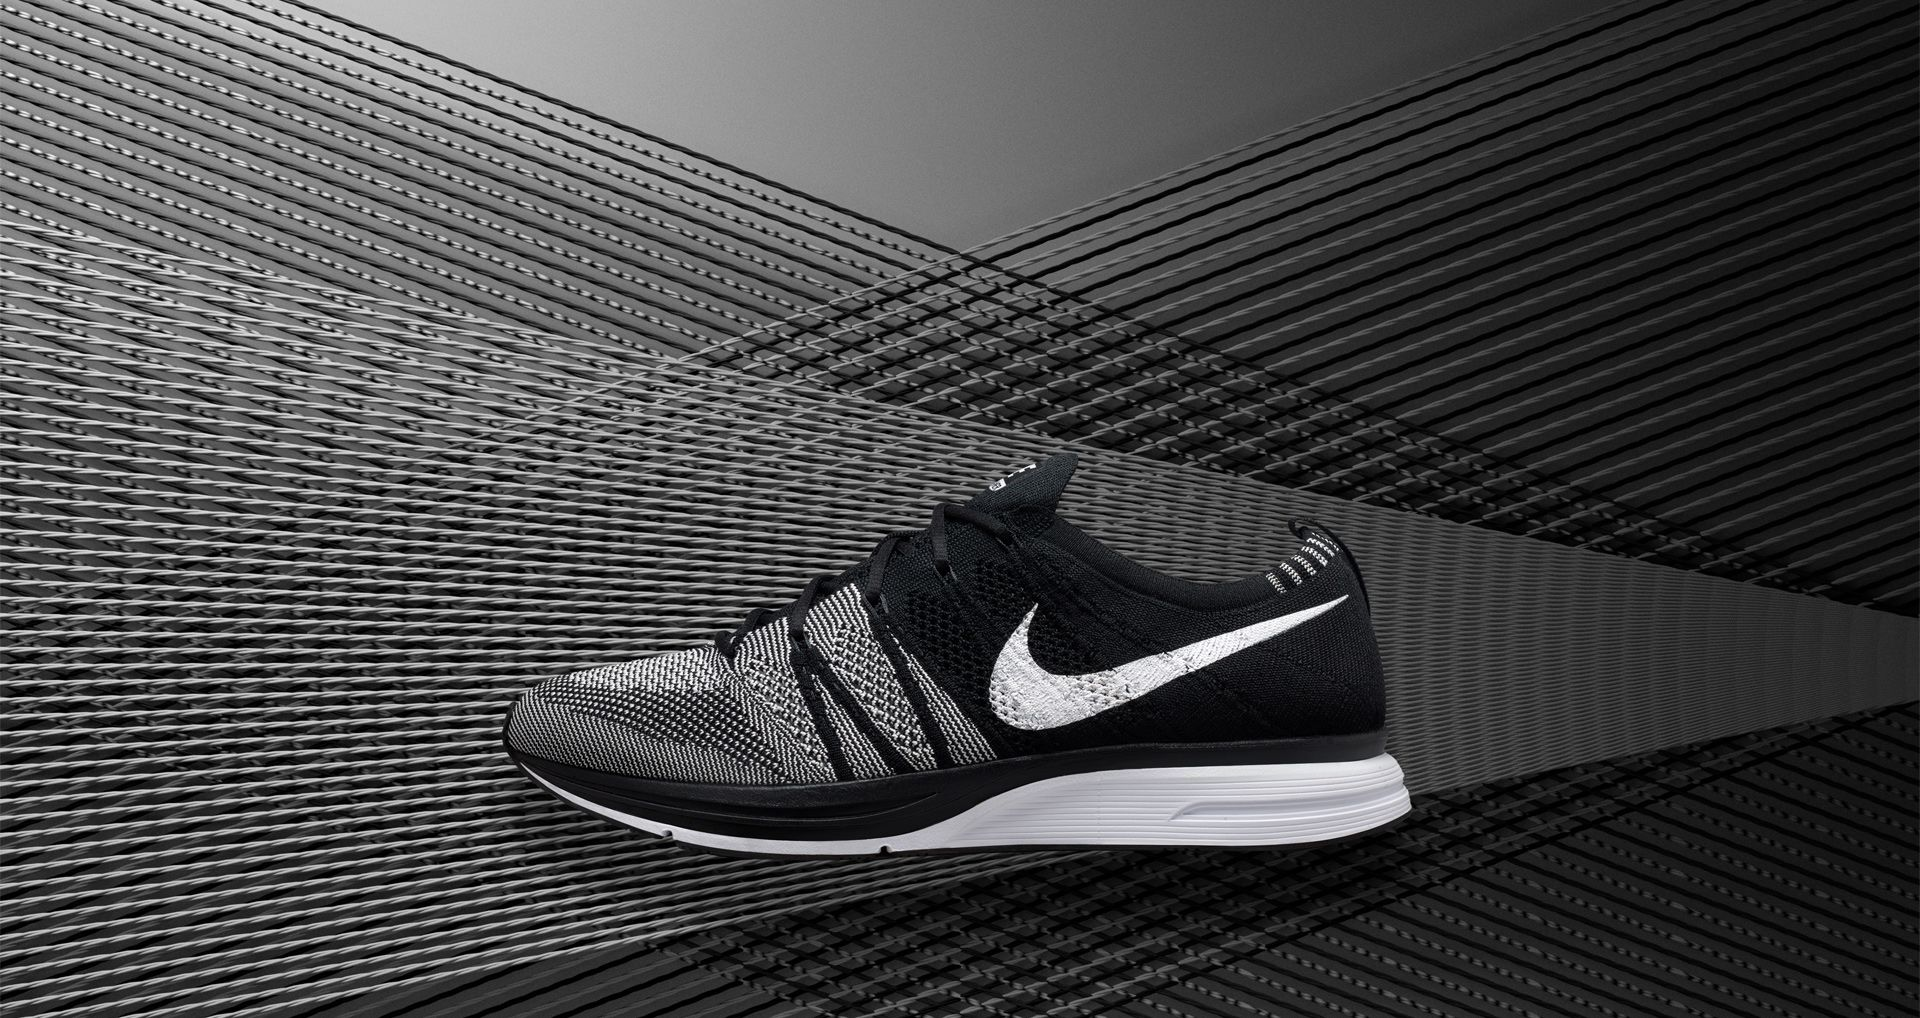 separation shoes a156c d590b Nike Flyknit Trainer Black  White Release Date. Nike+ SNKRS